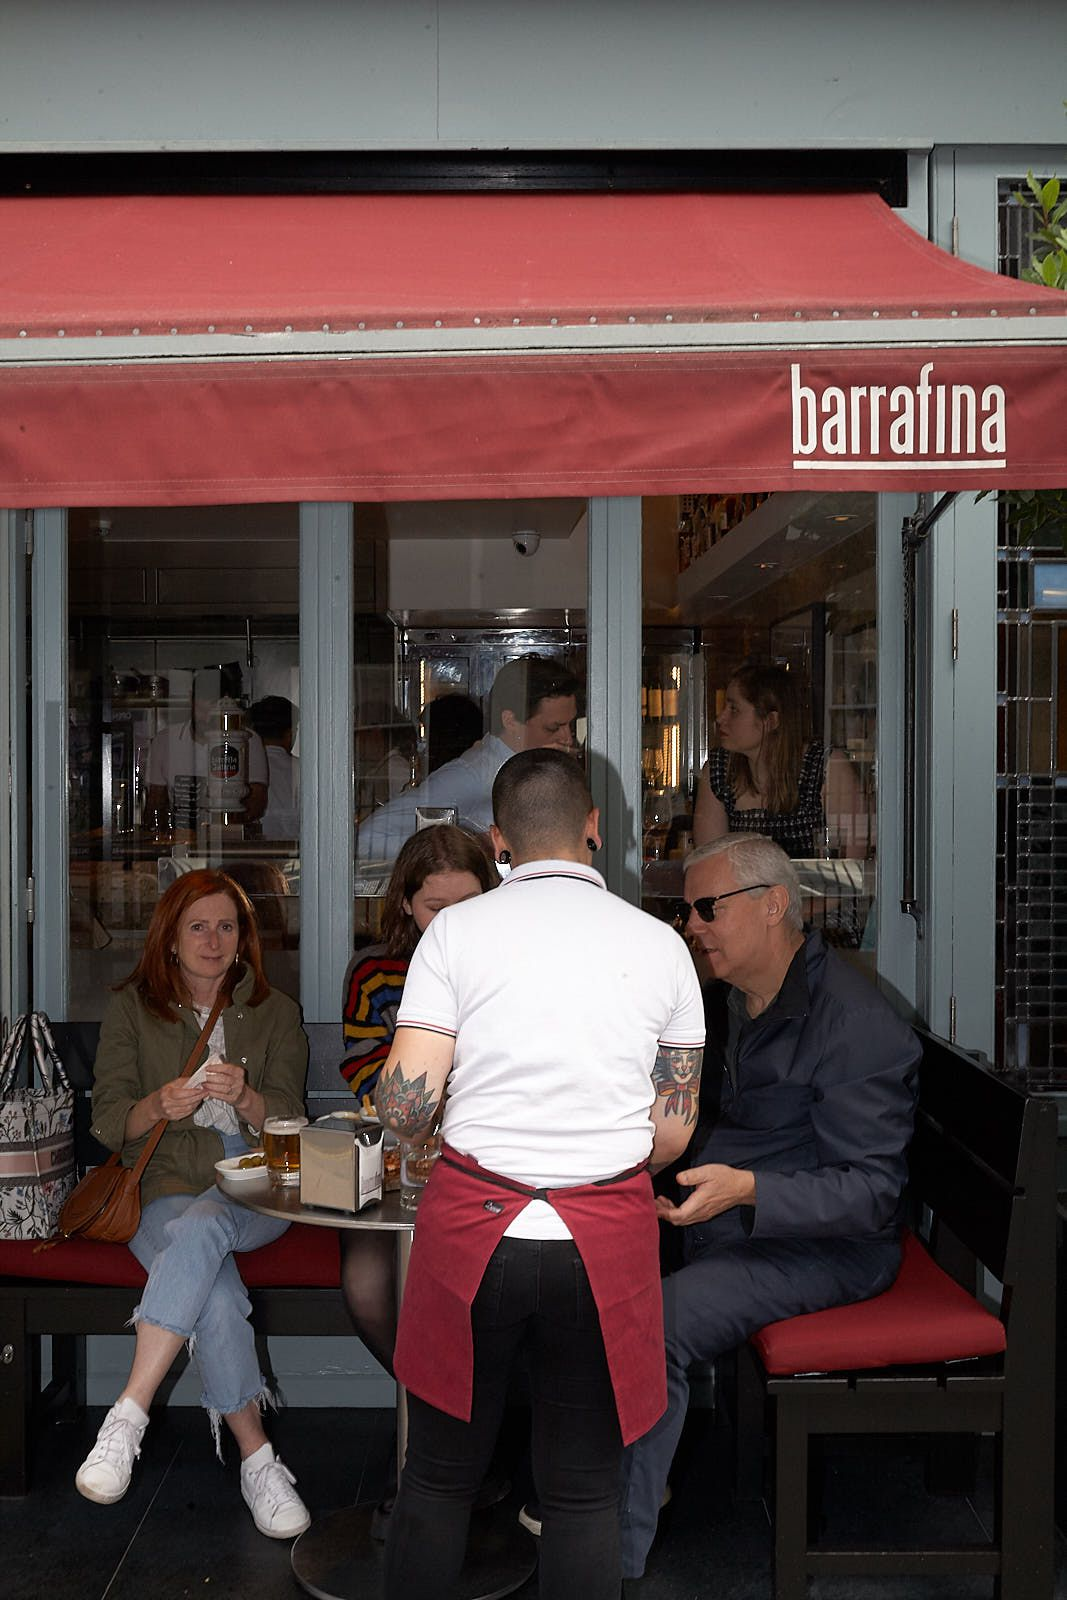 A waiter attends a table outside Barrafina in Soho